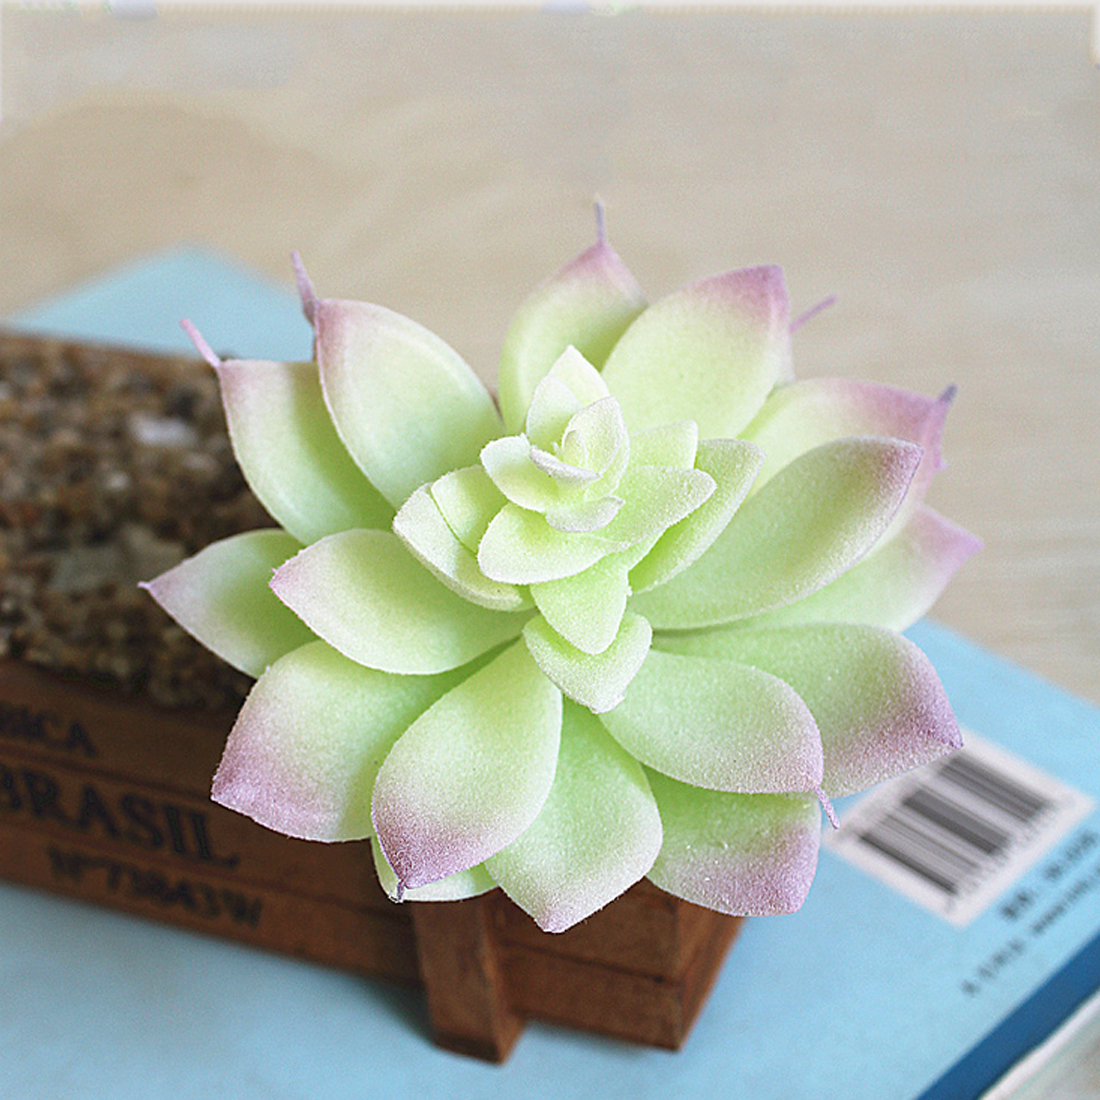 Artificial Plants Home Office Flower Decoration Fake Landscape